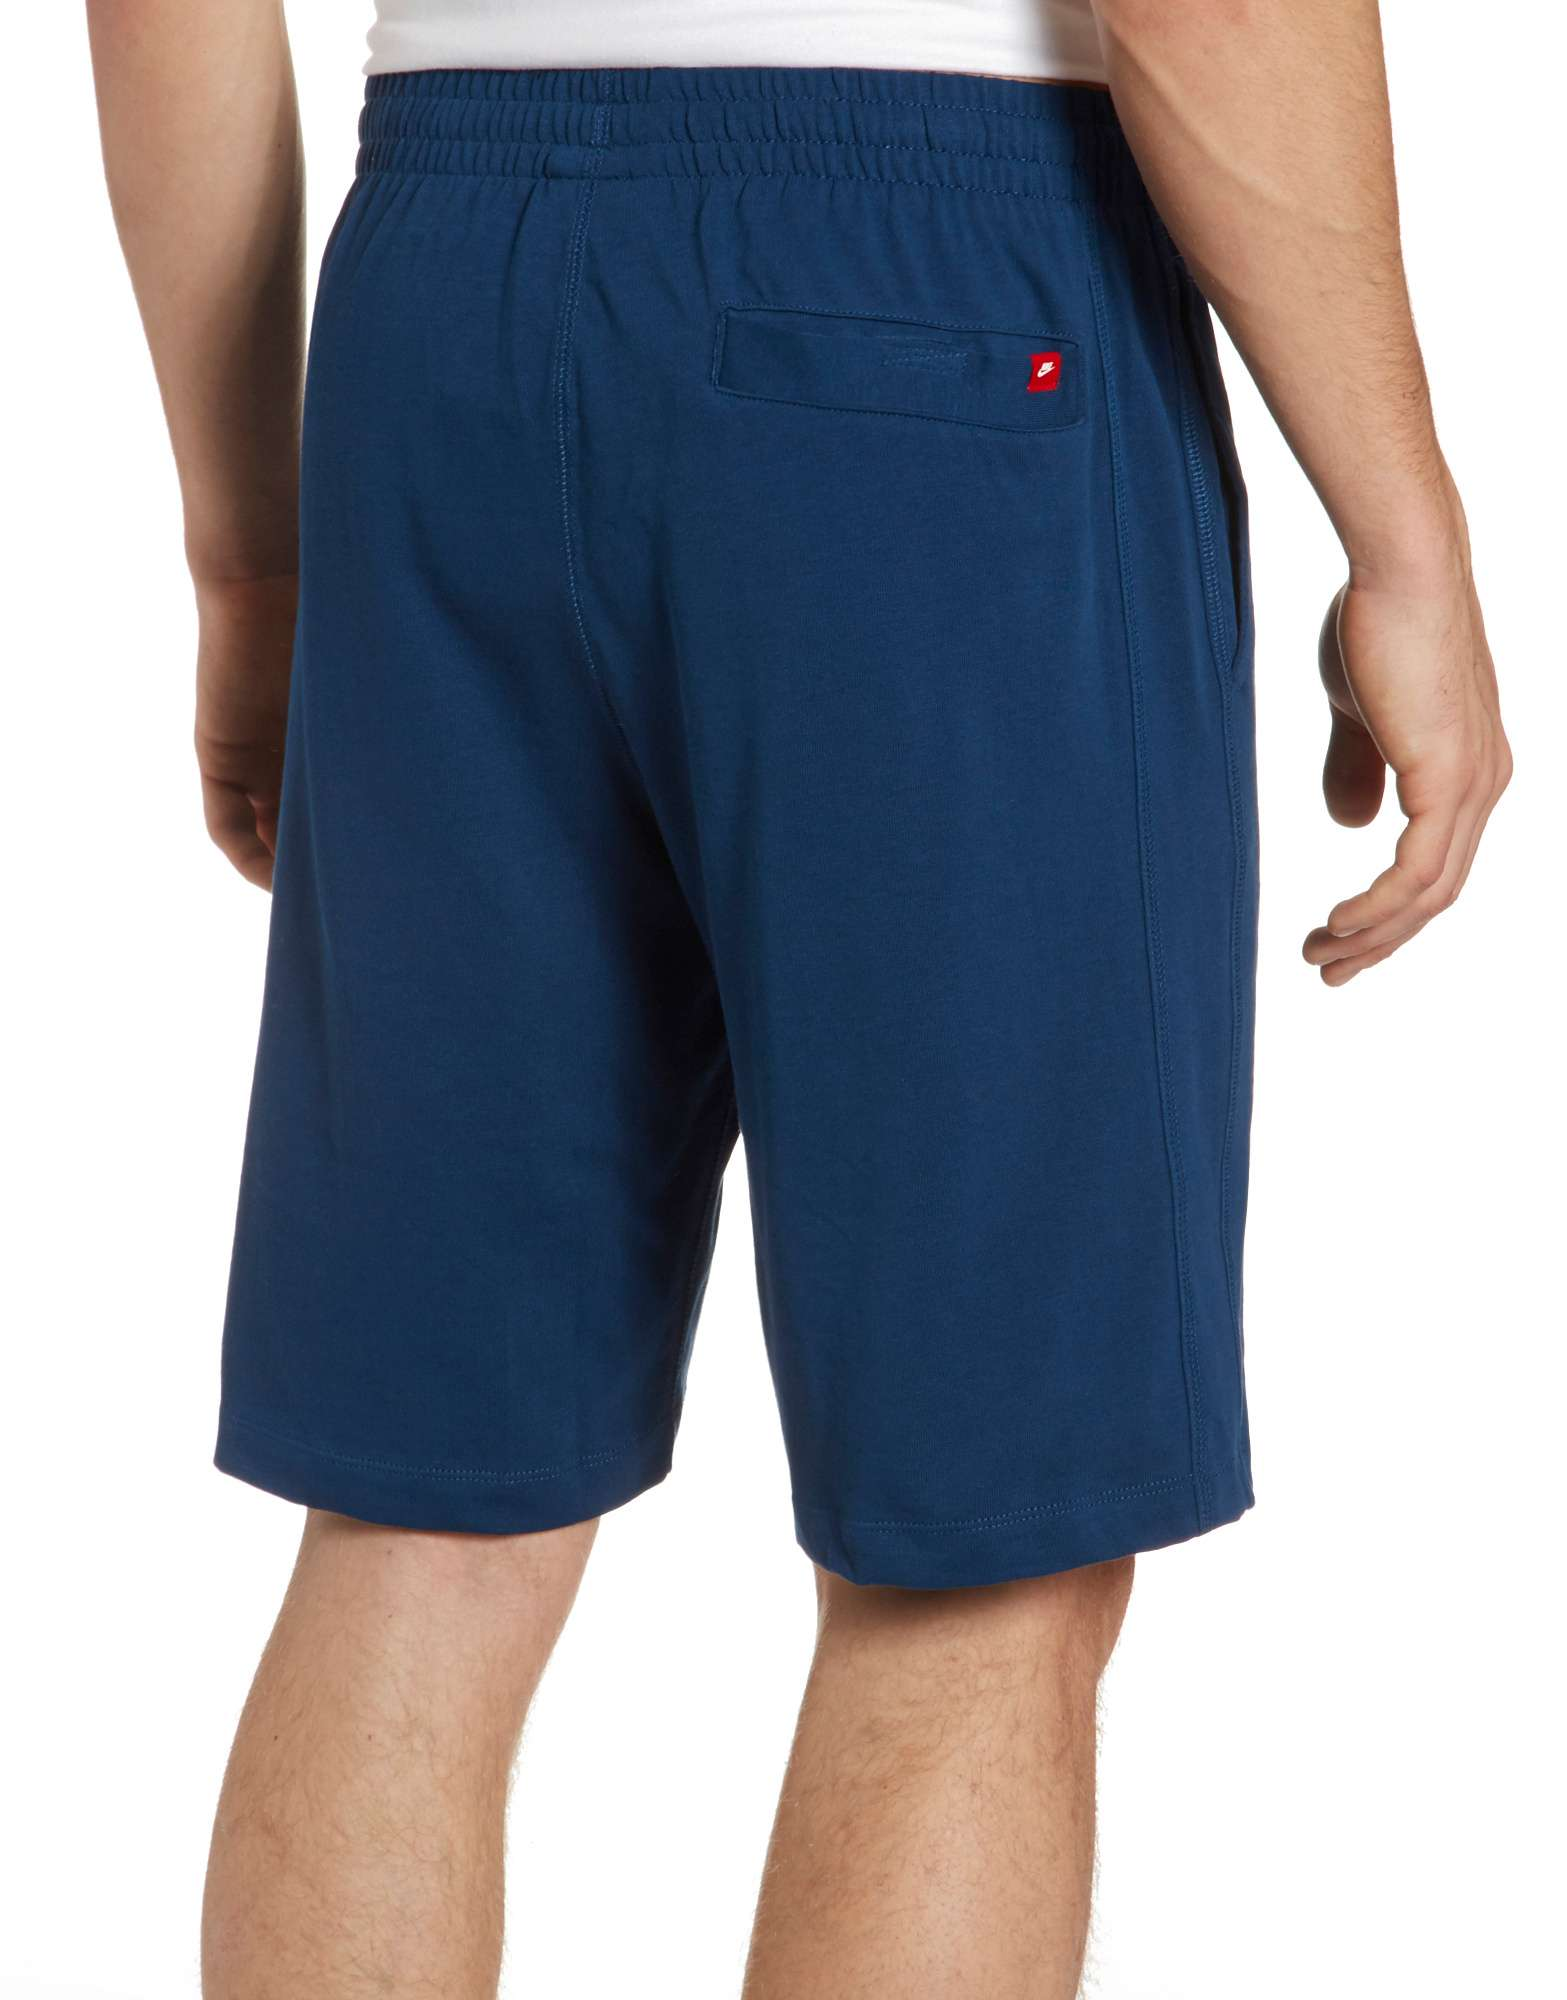 Nike Foundation Jersey Shorts